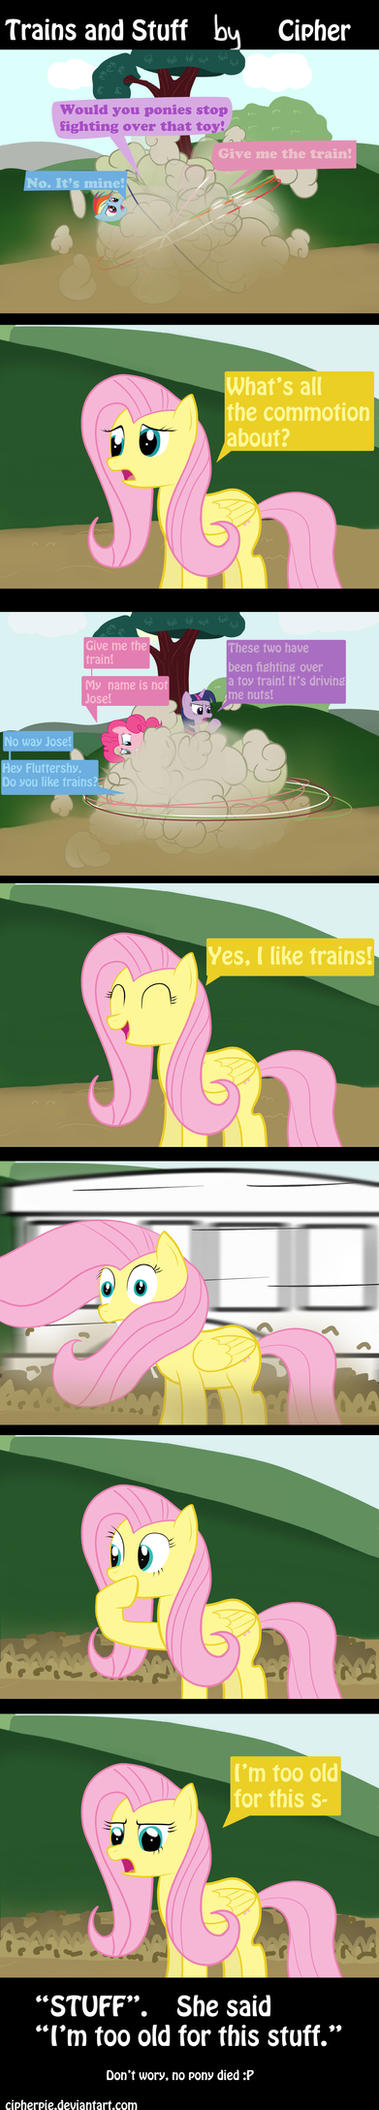 Trains and Stuff by cipherpie